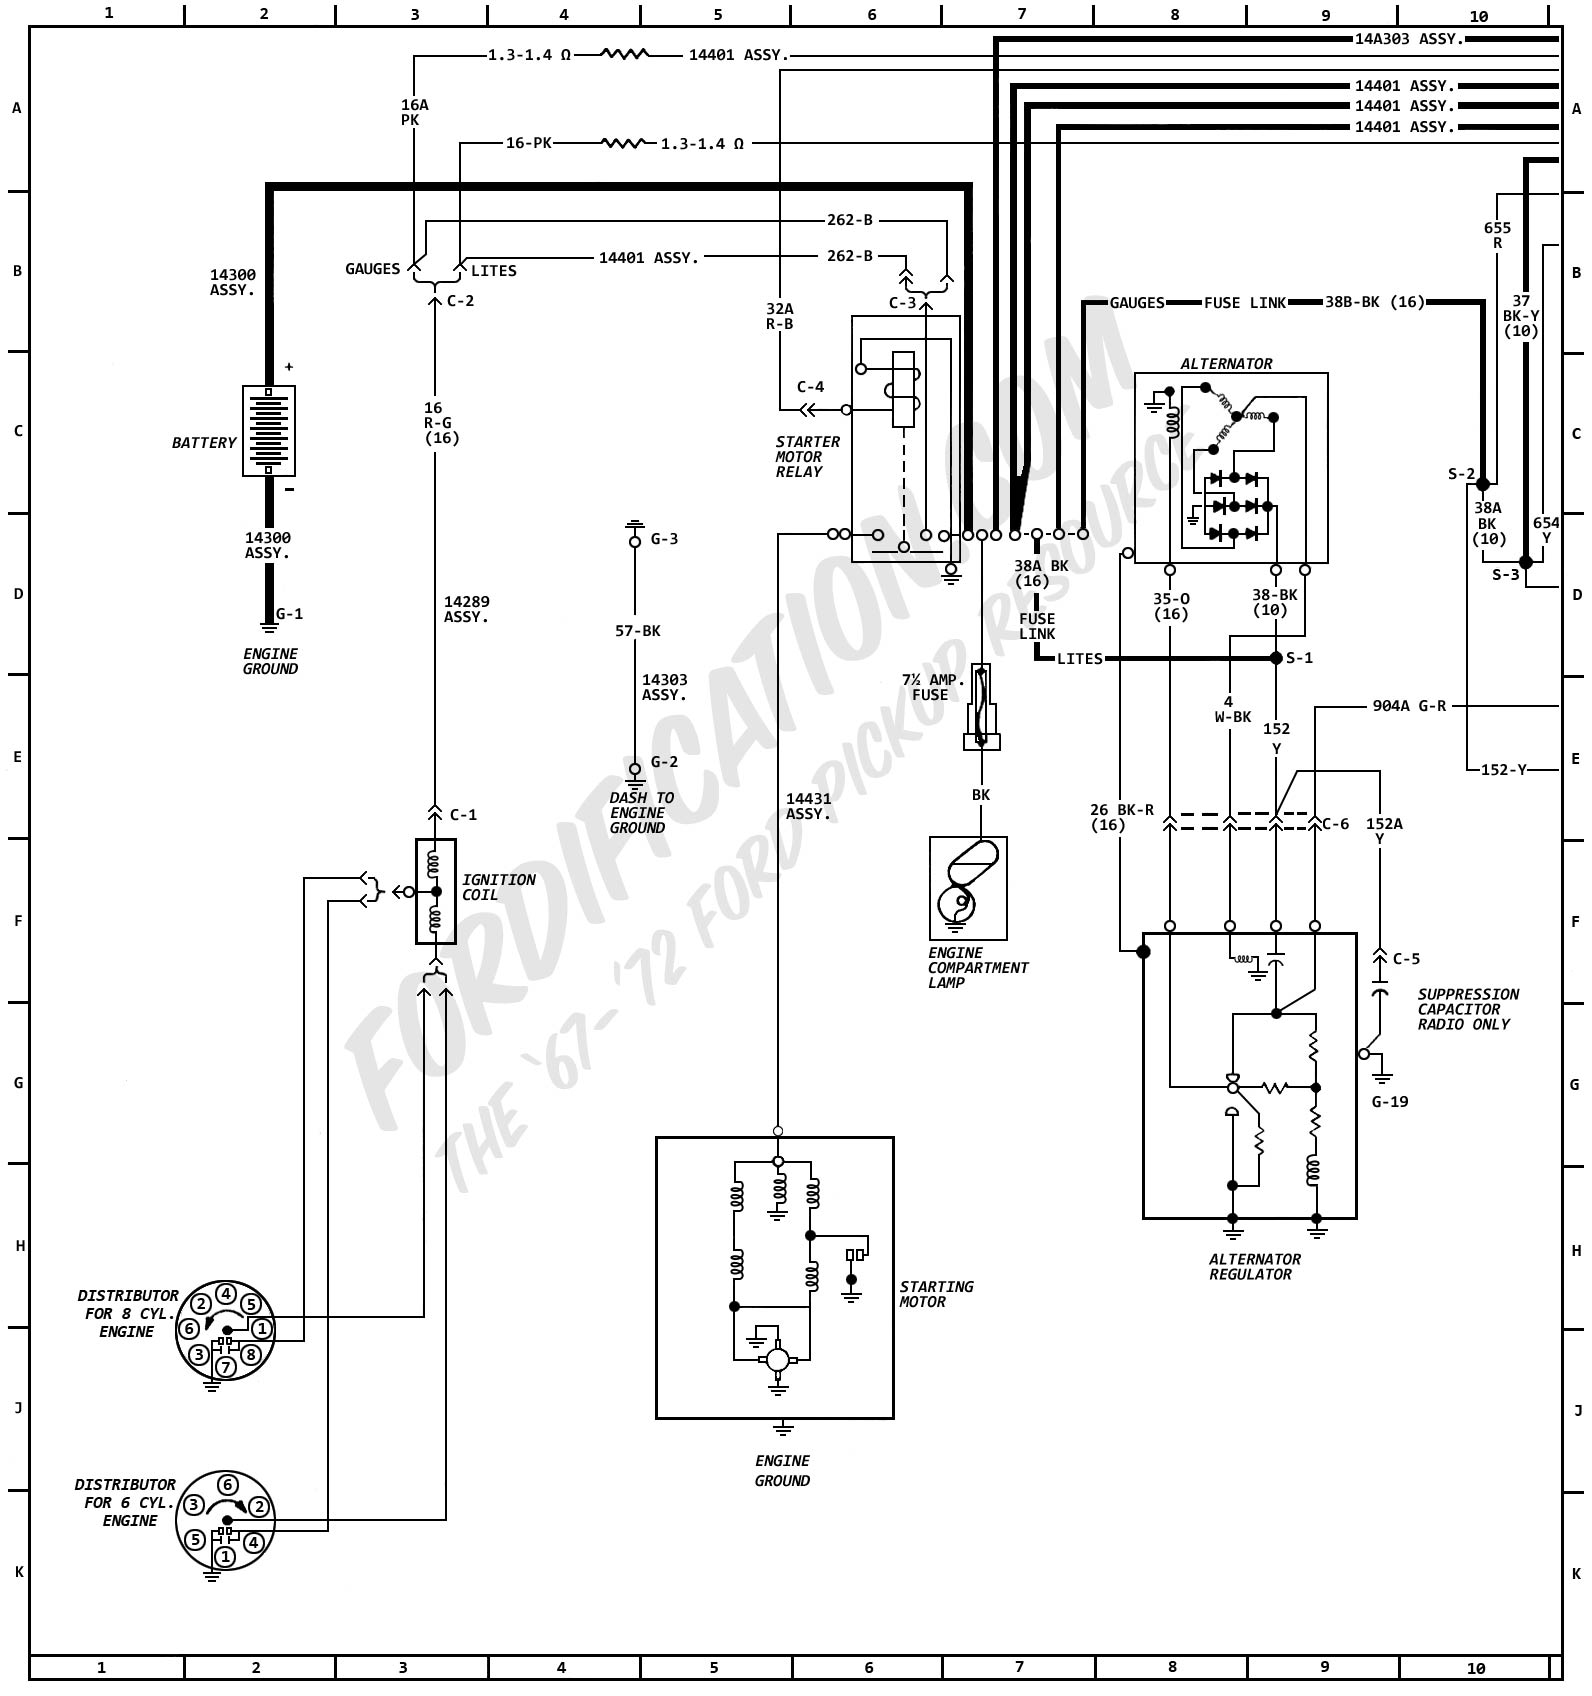 1972MasterWiring_01 1972 ford truck wiring diagrams fordification com on 72 ford f100 engin wiring harness